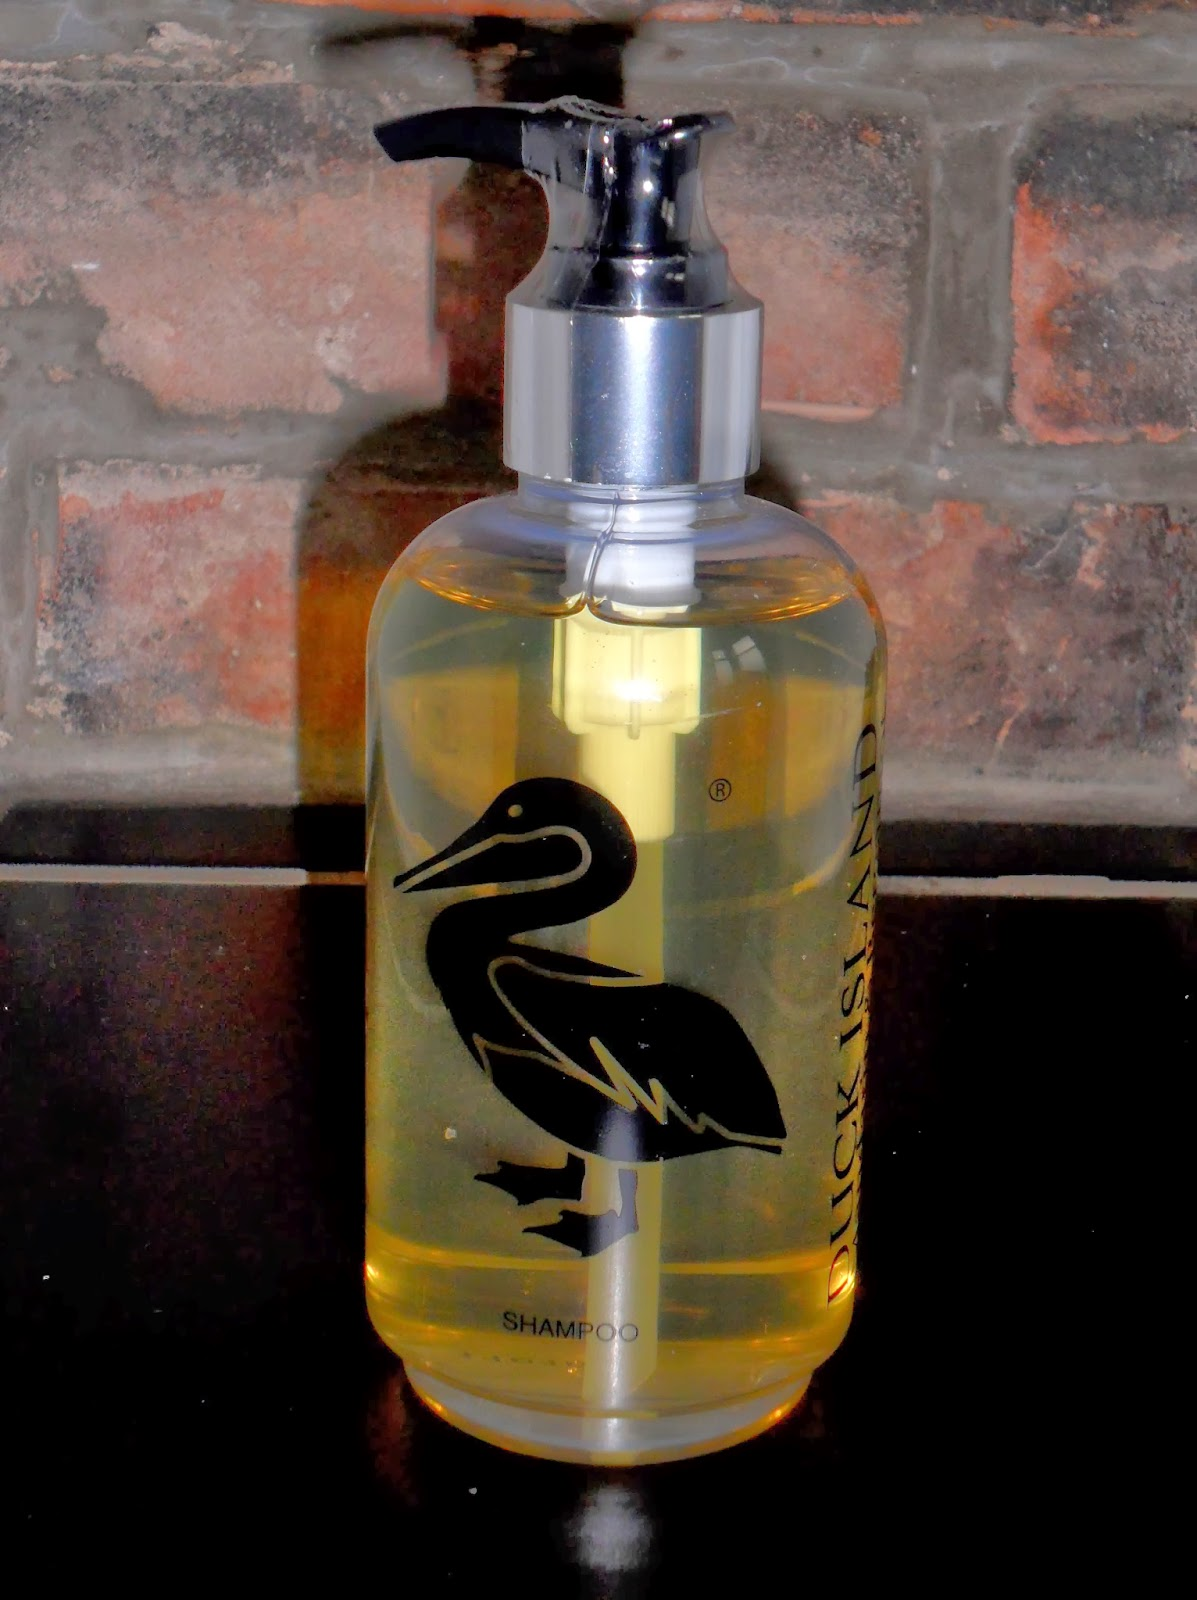 Betrousse Absolutely Fabulous, Duck Island Shampoo, Paraben Free Shampoo, Paraben free products